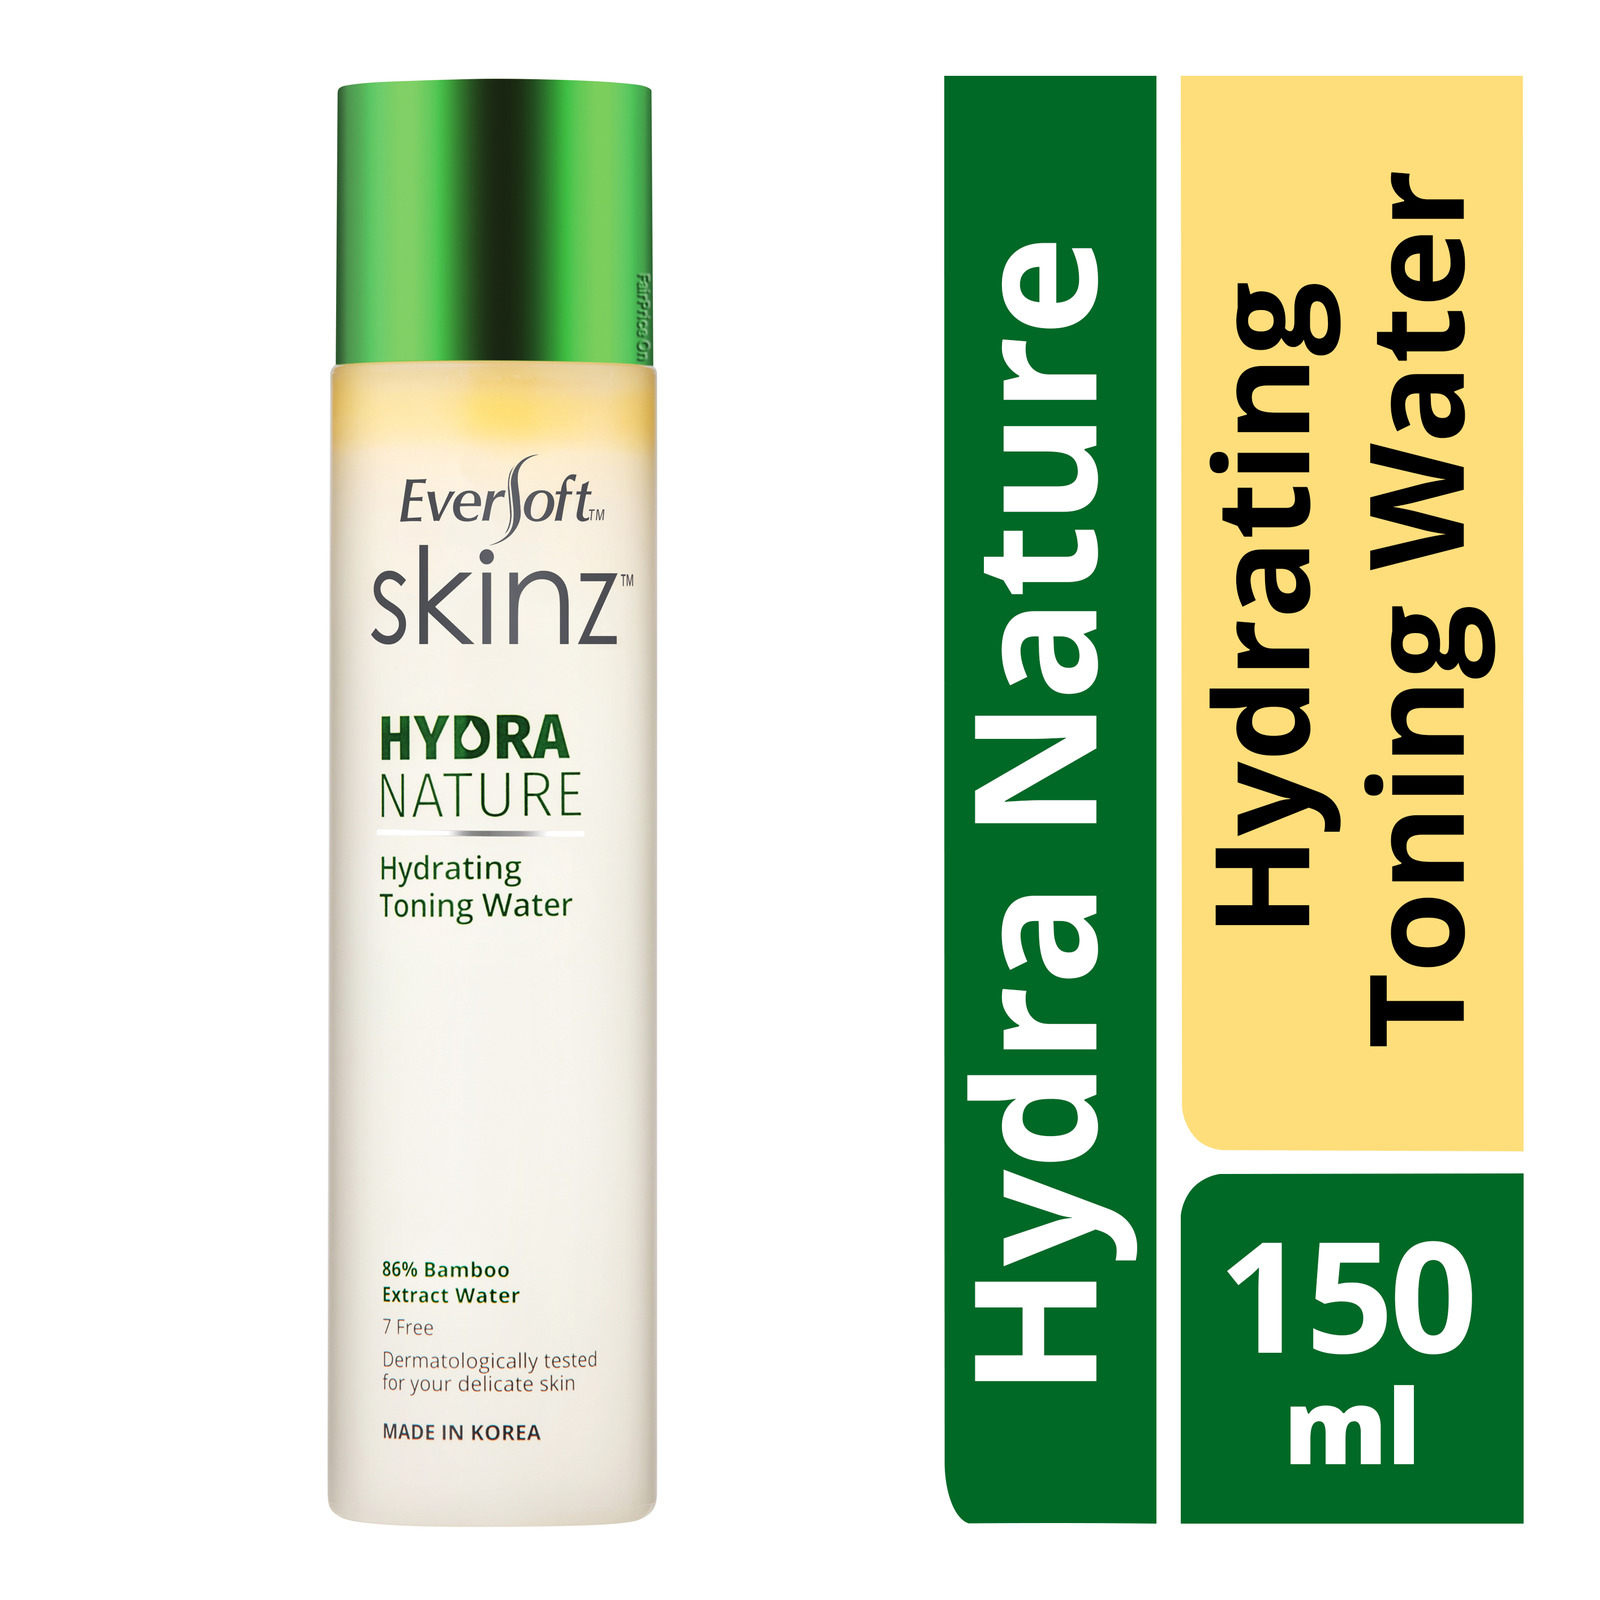 Eversoft Skinz Hydra Nature Hydrating Toning Water